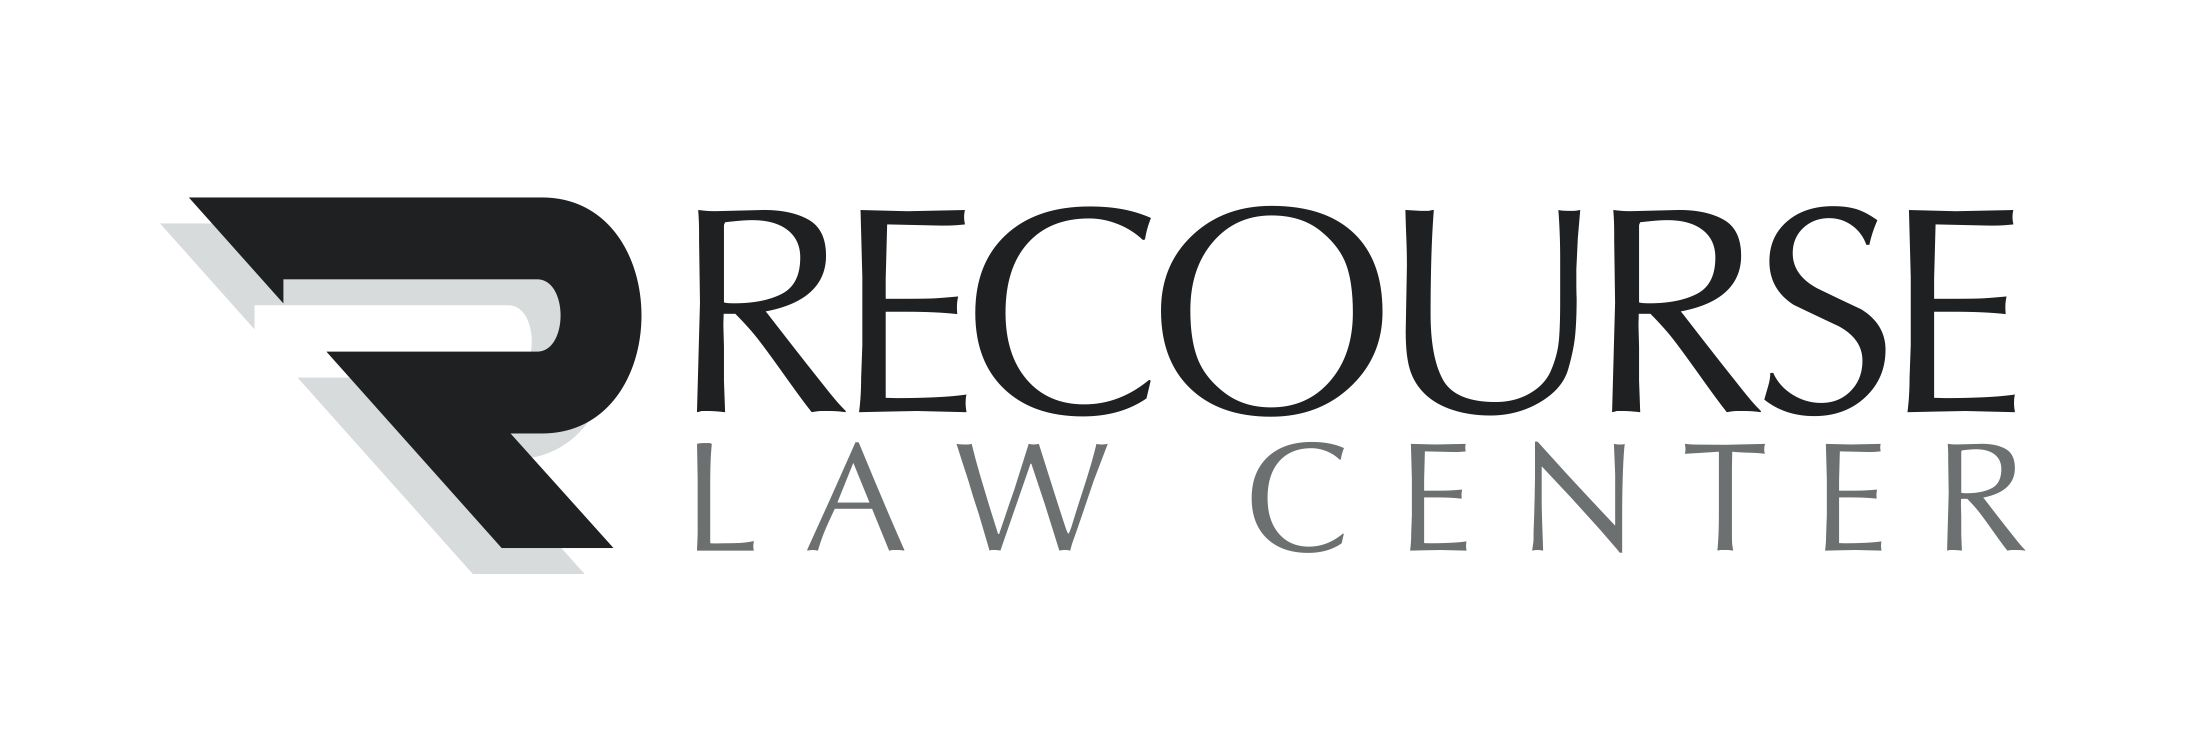 Recourse Law Center, Pc.